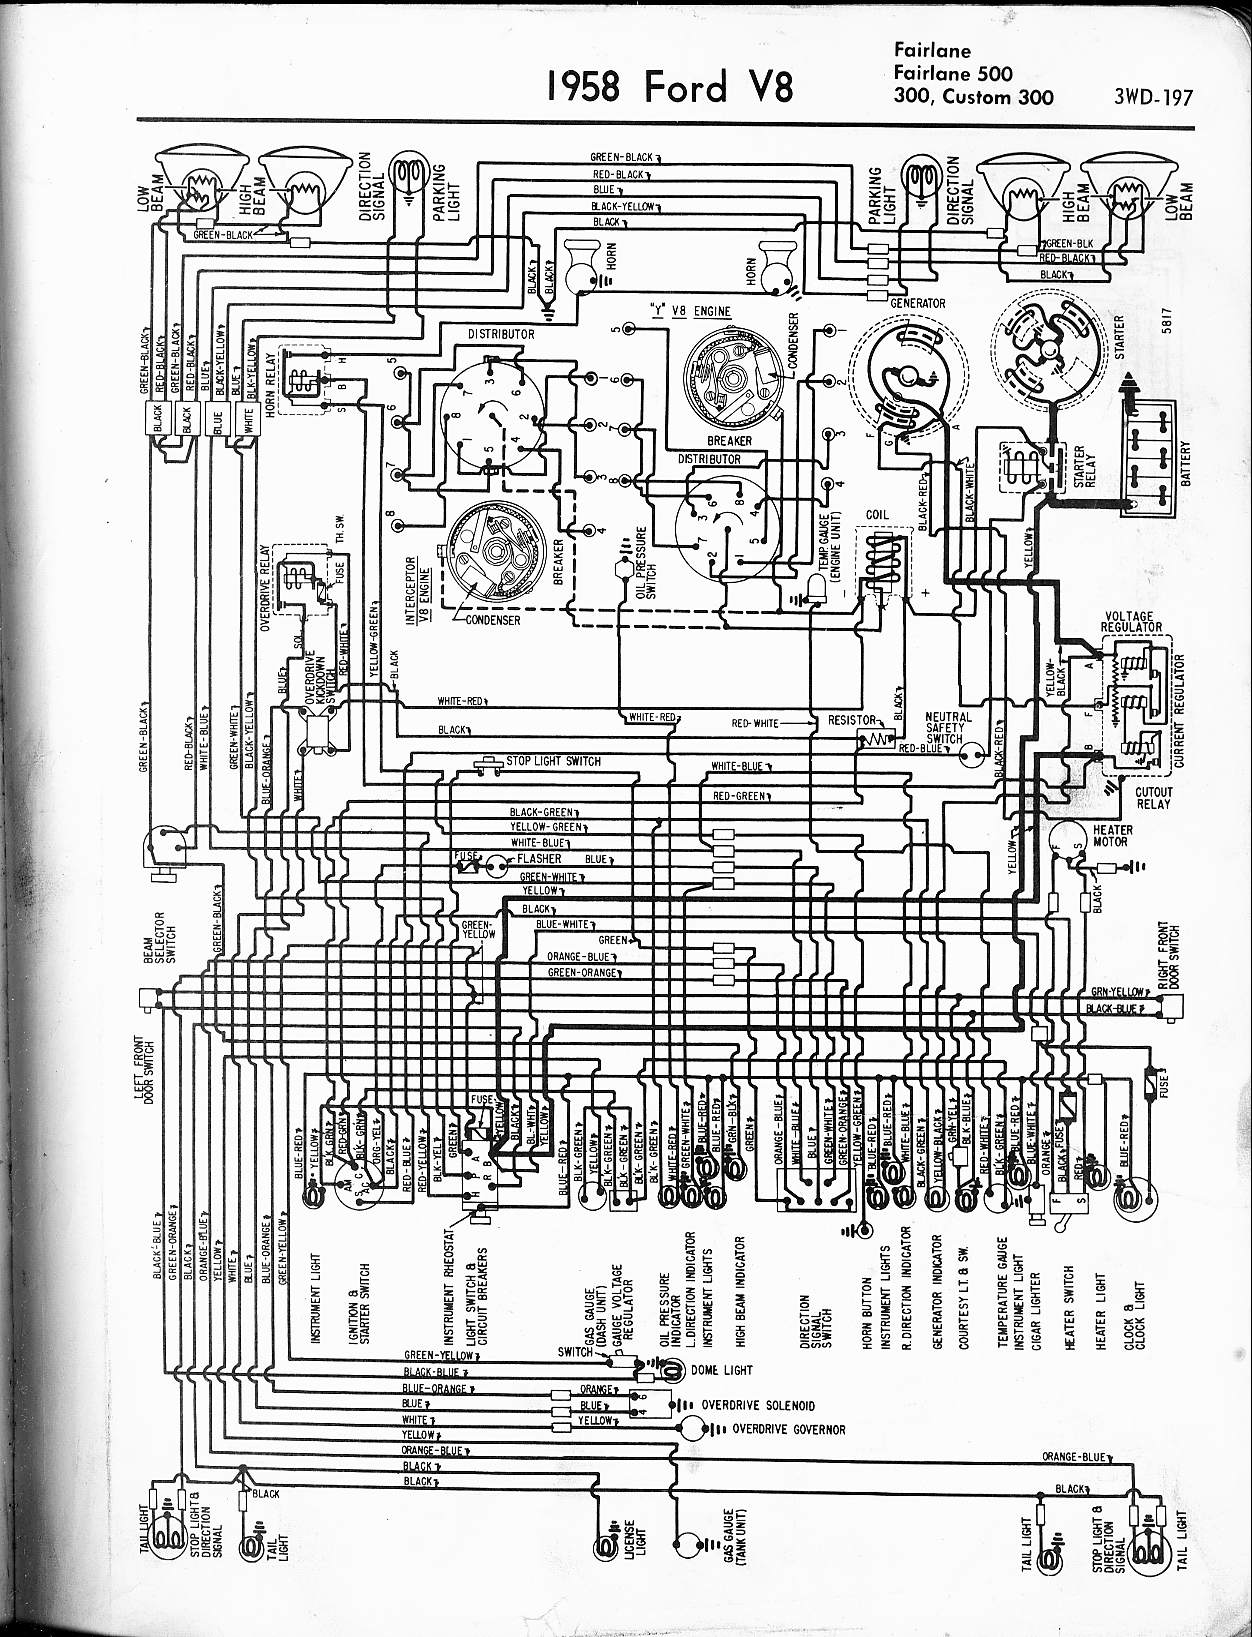 MWire5765 197 57 65 ford wiring diagrams ford wiring schematics at fashall.co